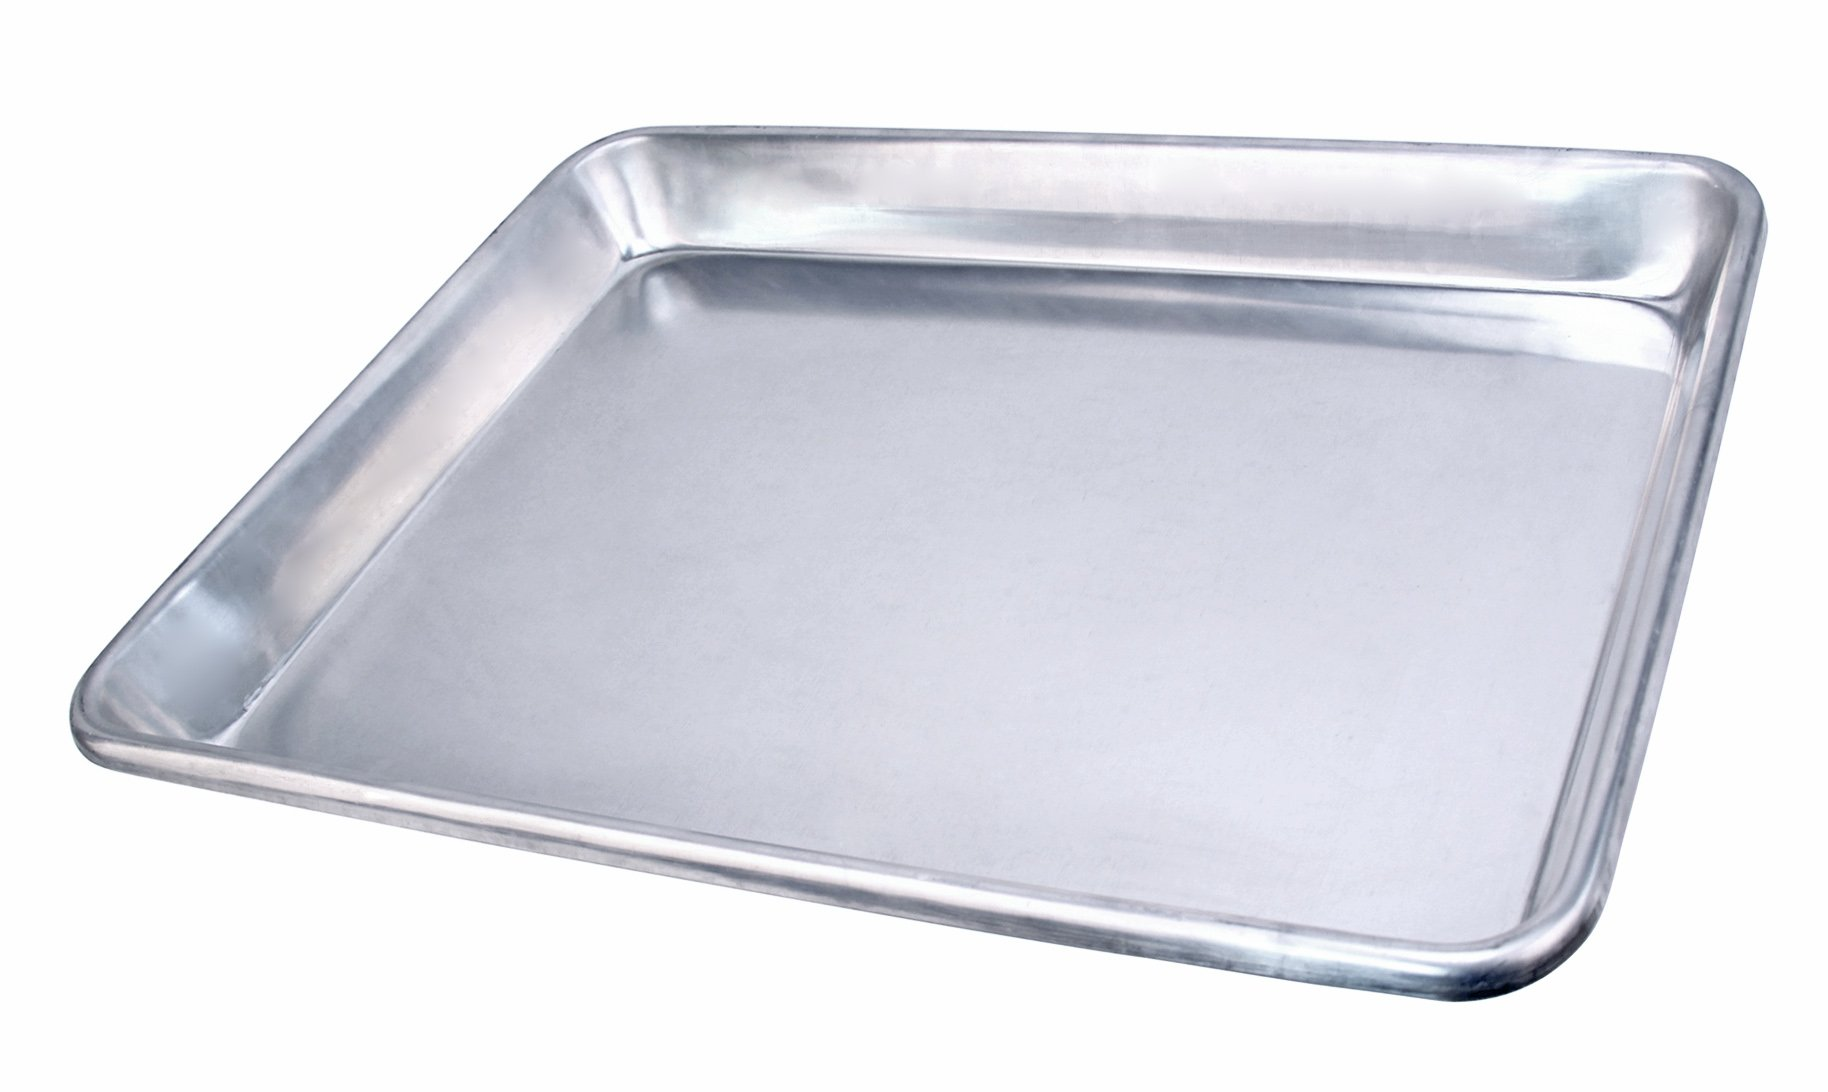 New Star Foodservice 36817 Extra Heavy Aluminum Sheet Pan, 12 Gauge, 18'' x 26'' x 2'', Full Size (Pack of 12)